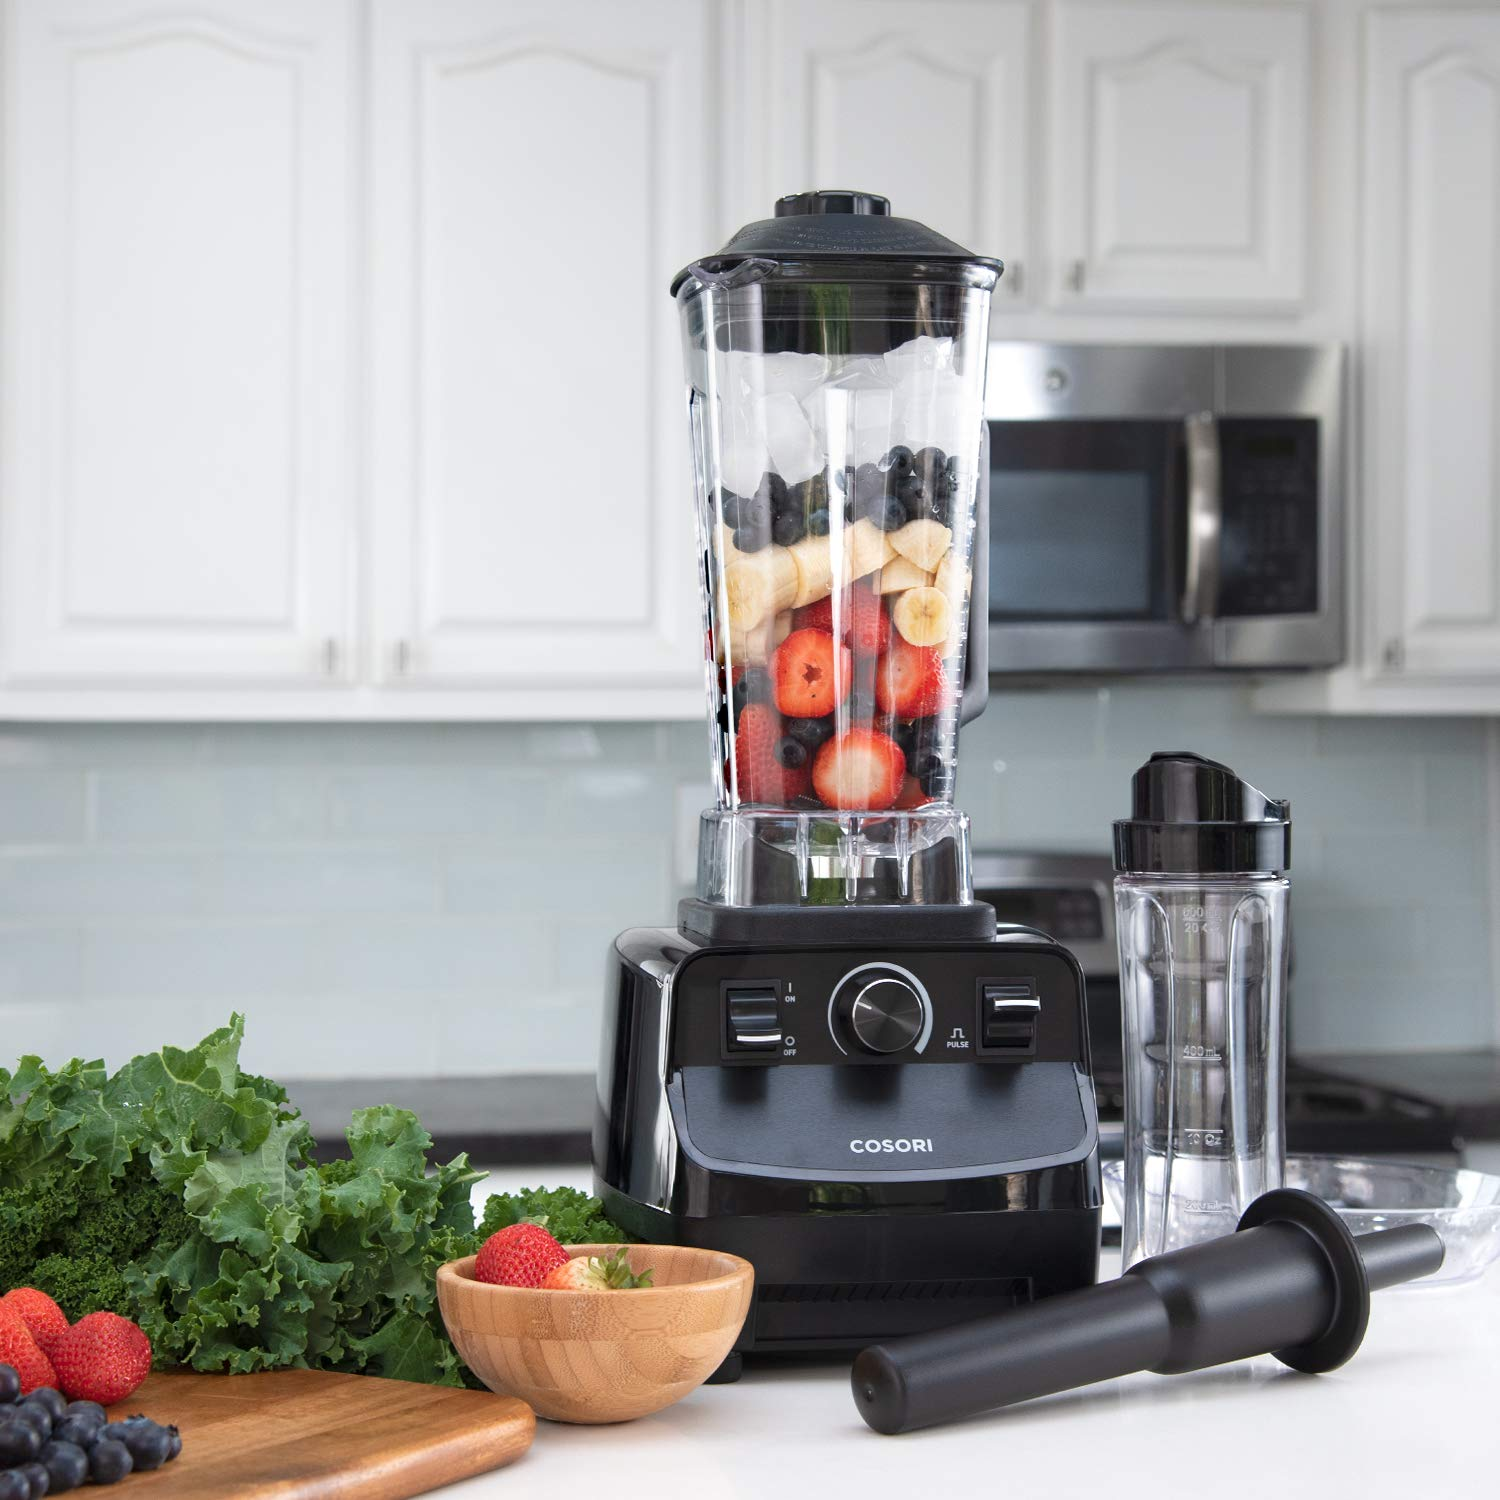 COSORI Blender for Shakes and Smoothies(50 Recipes),1400W Heavy Duty Professional Blender for Crushing Ice, Frozen Fruit with 64oz Pitcher&20oz Travel Bottle,2-Year Warranty,ETL Listed/FDA Compliant by COSORI (Image #8)